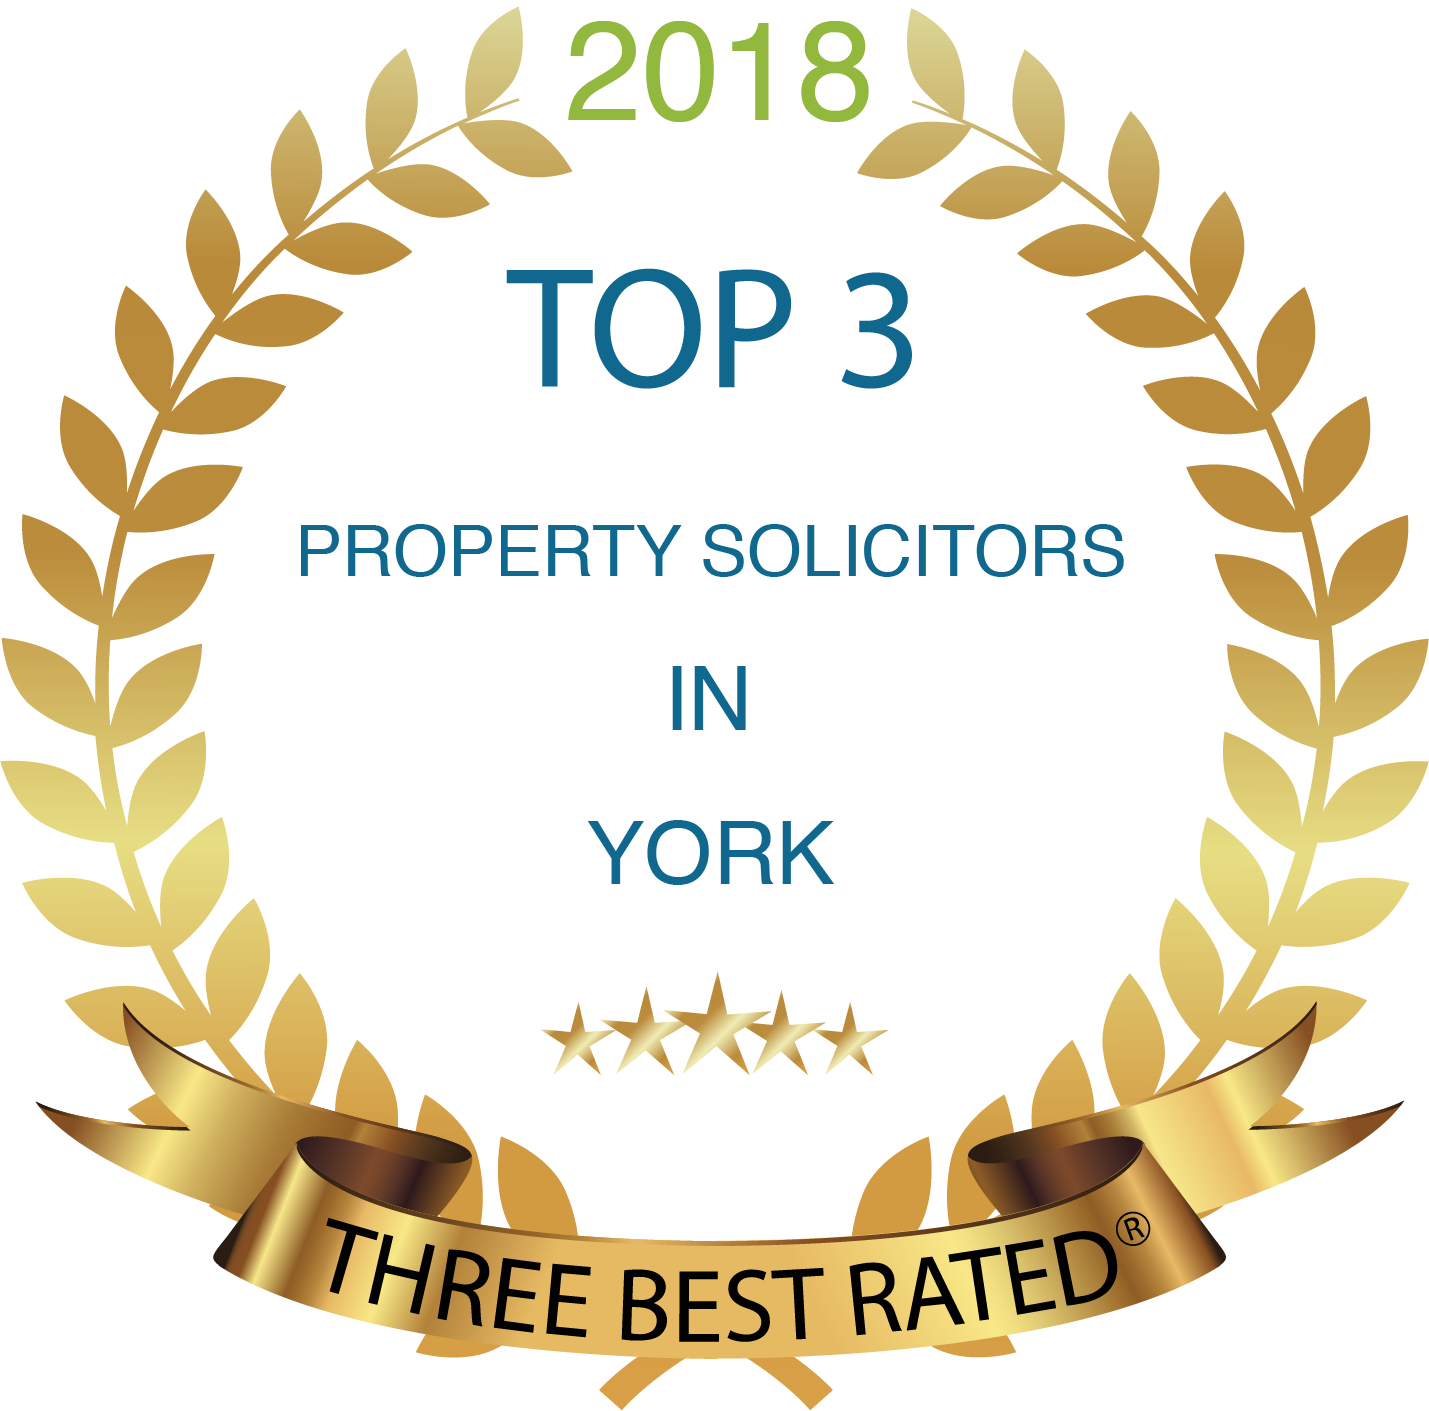 Top 3 Award for Barbara Jacobs & Co Solicitors - property and conveyancing residential sale and purchase